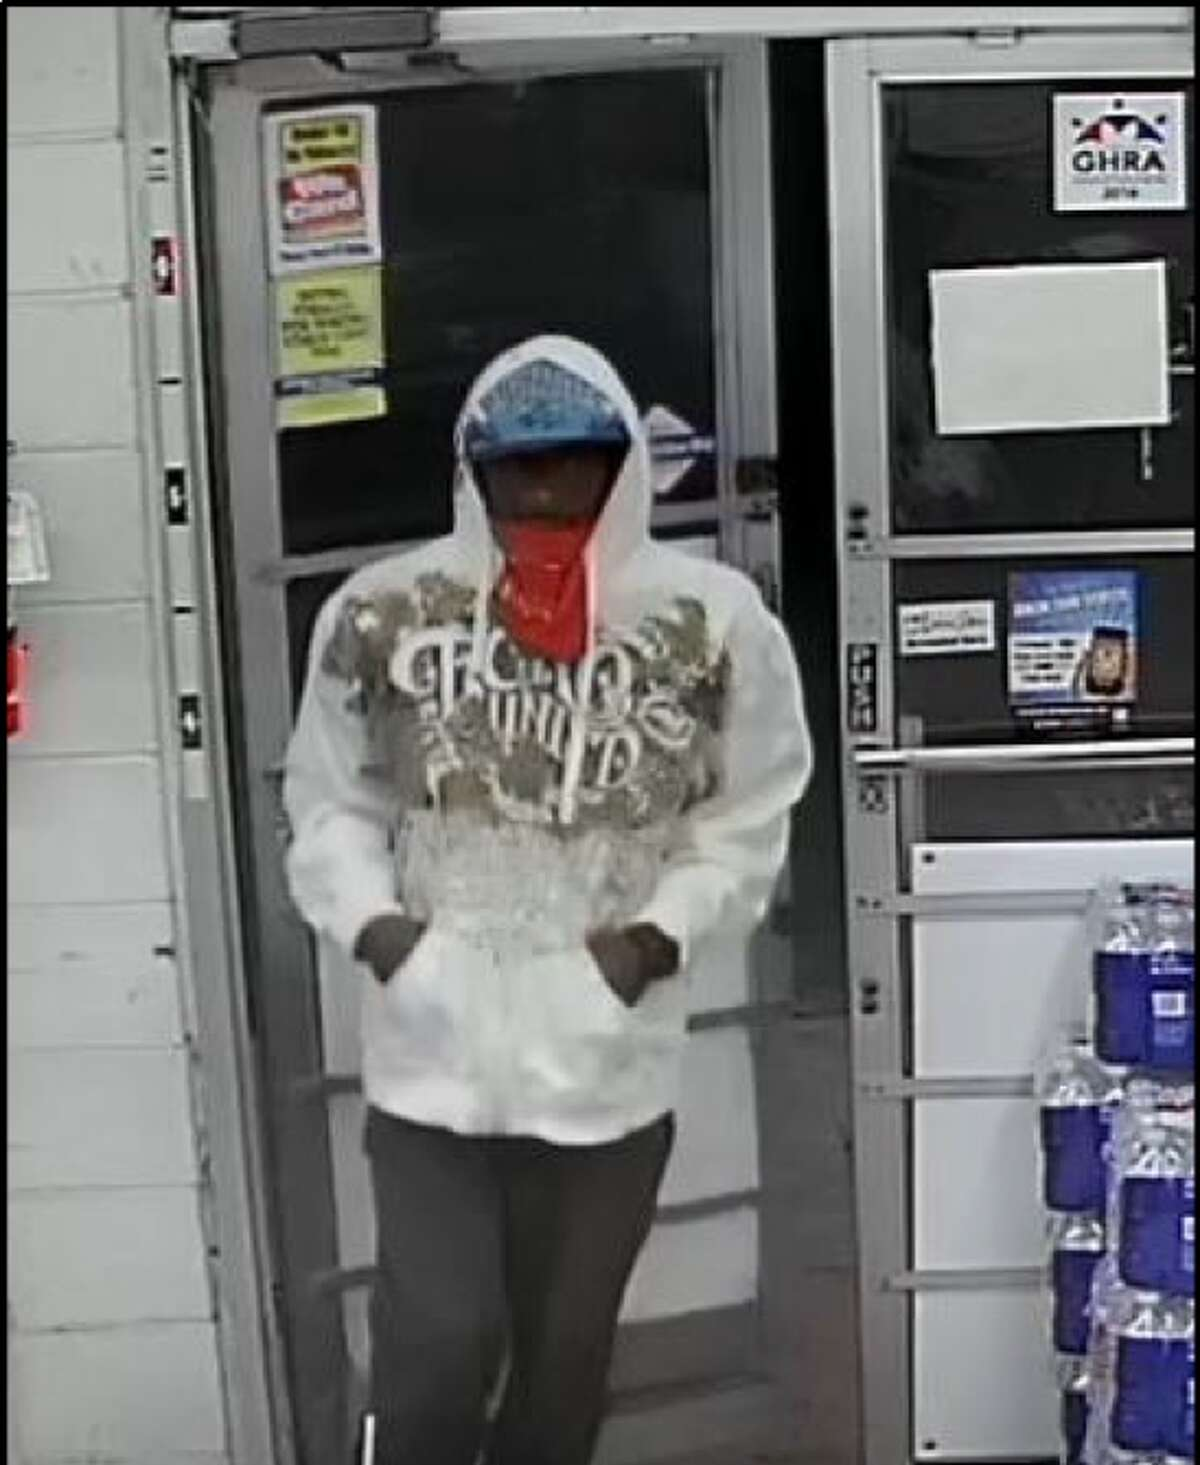 Pearland police are seeking the public's help in identifying this suspect who robbed the Tweety Market convenience store on Oct. 30, 2016.